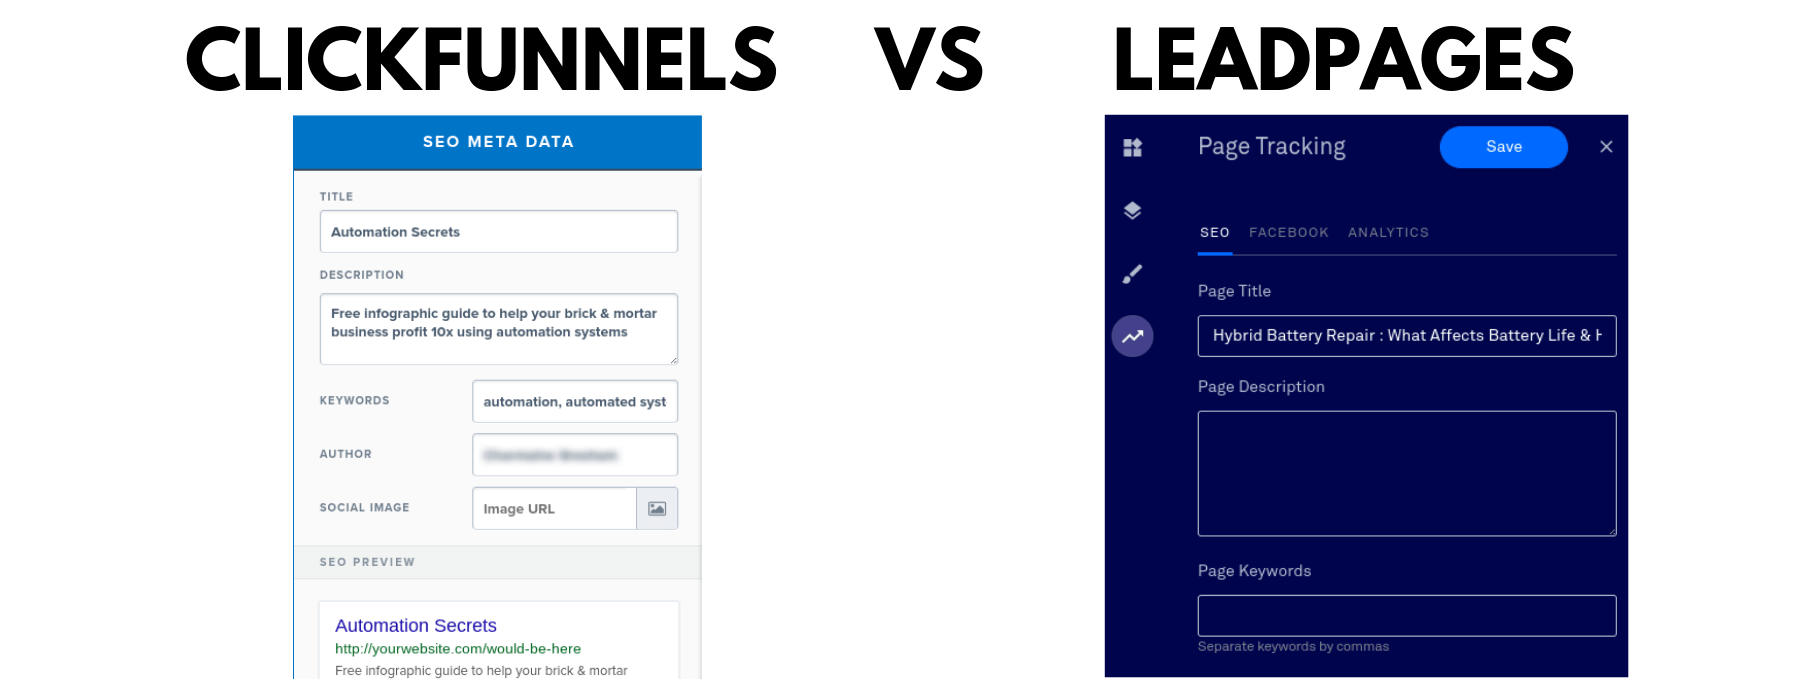 All about Clickfunnels Vs Leadpages 2016